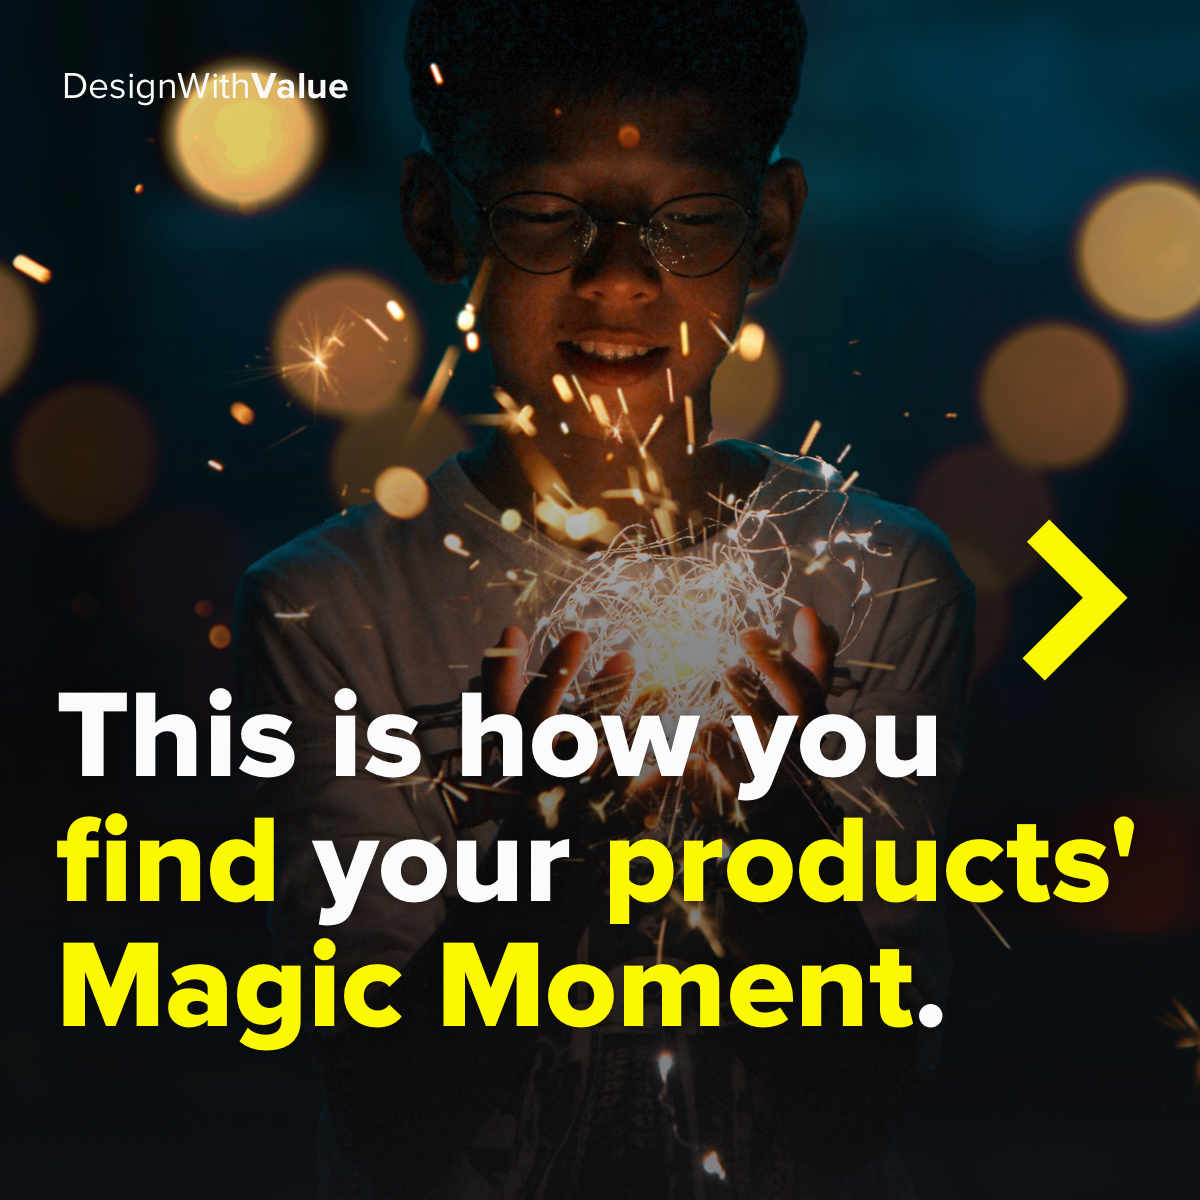 This is how you find your products' magic moment.